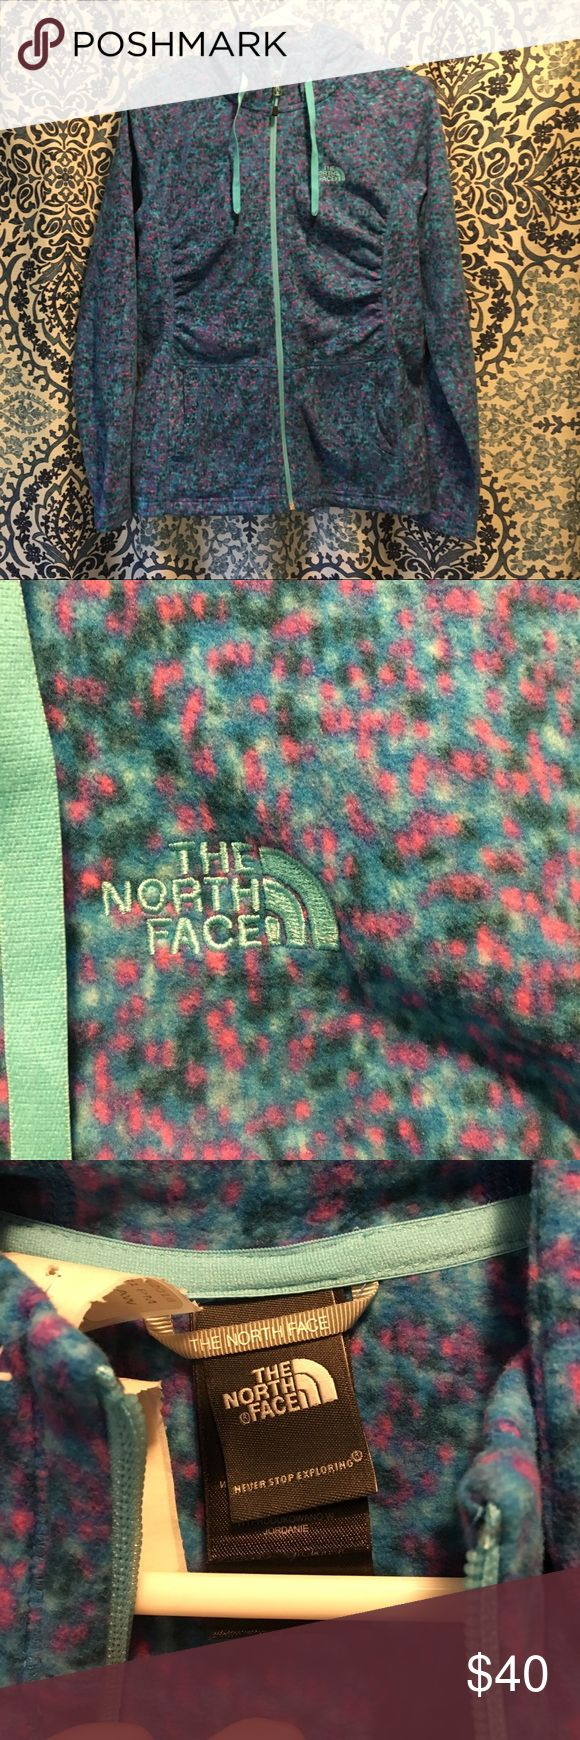 NWOT North face fleece jacket NWOT north face fleece jacket. Great for spring and fall. Fun pattern! The North Face Jackets & Coats